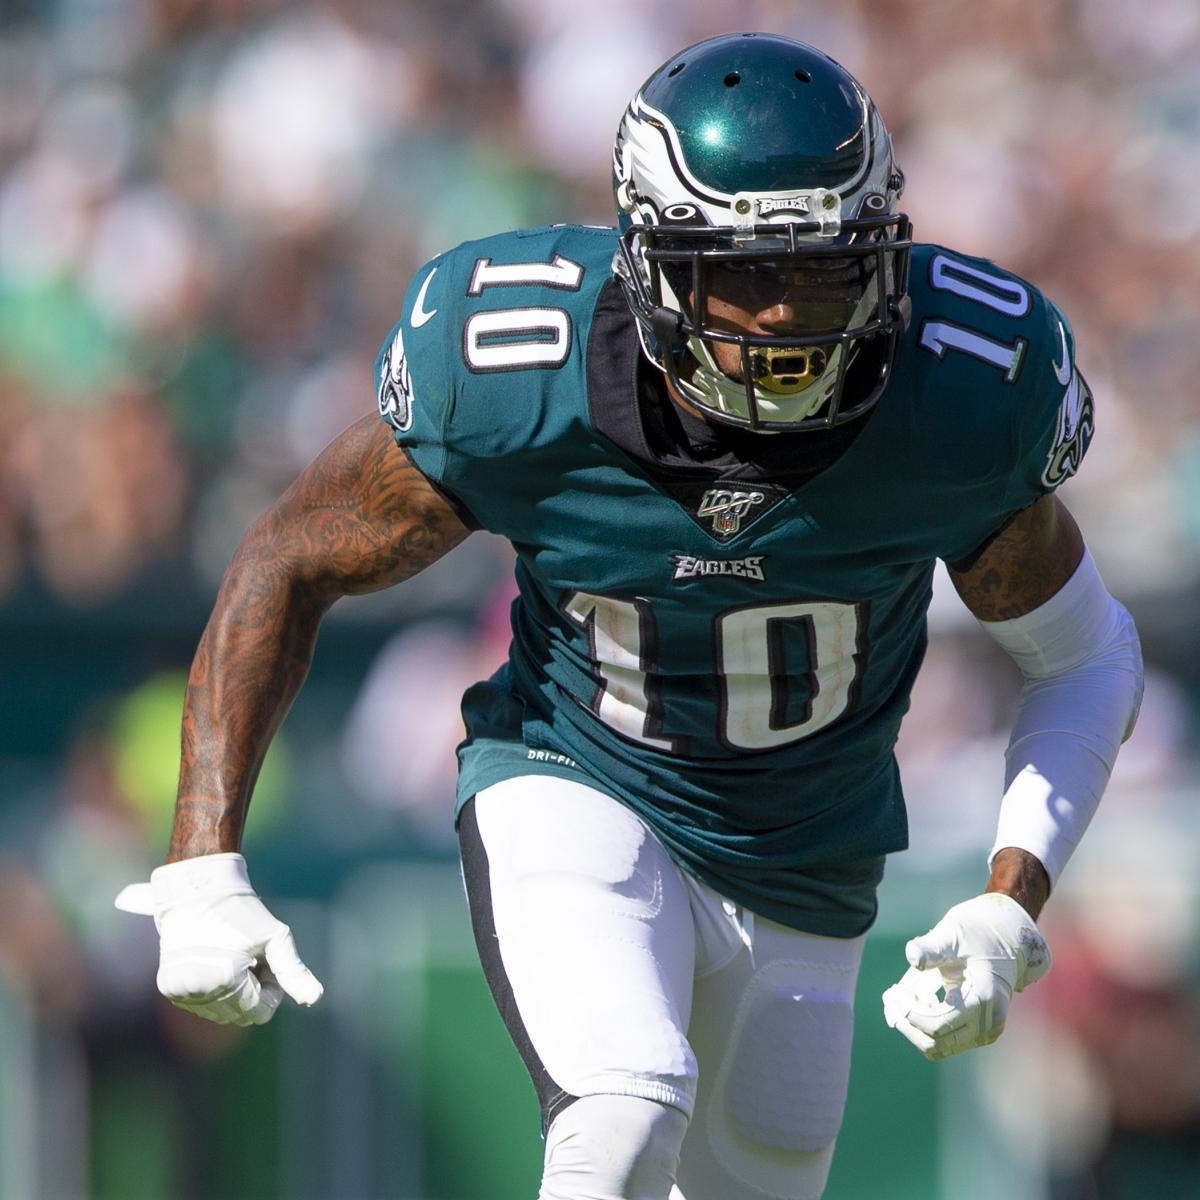 https://celebritycontent.com/2020/07/11/eagles-desean-jackson-fined-for-detrimental-conduct-after-anti-semitic-posts/